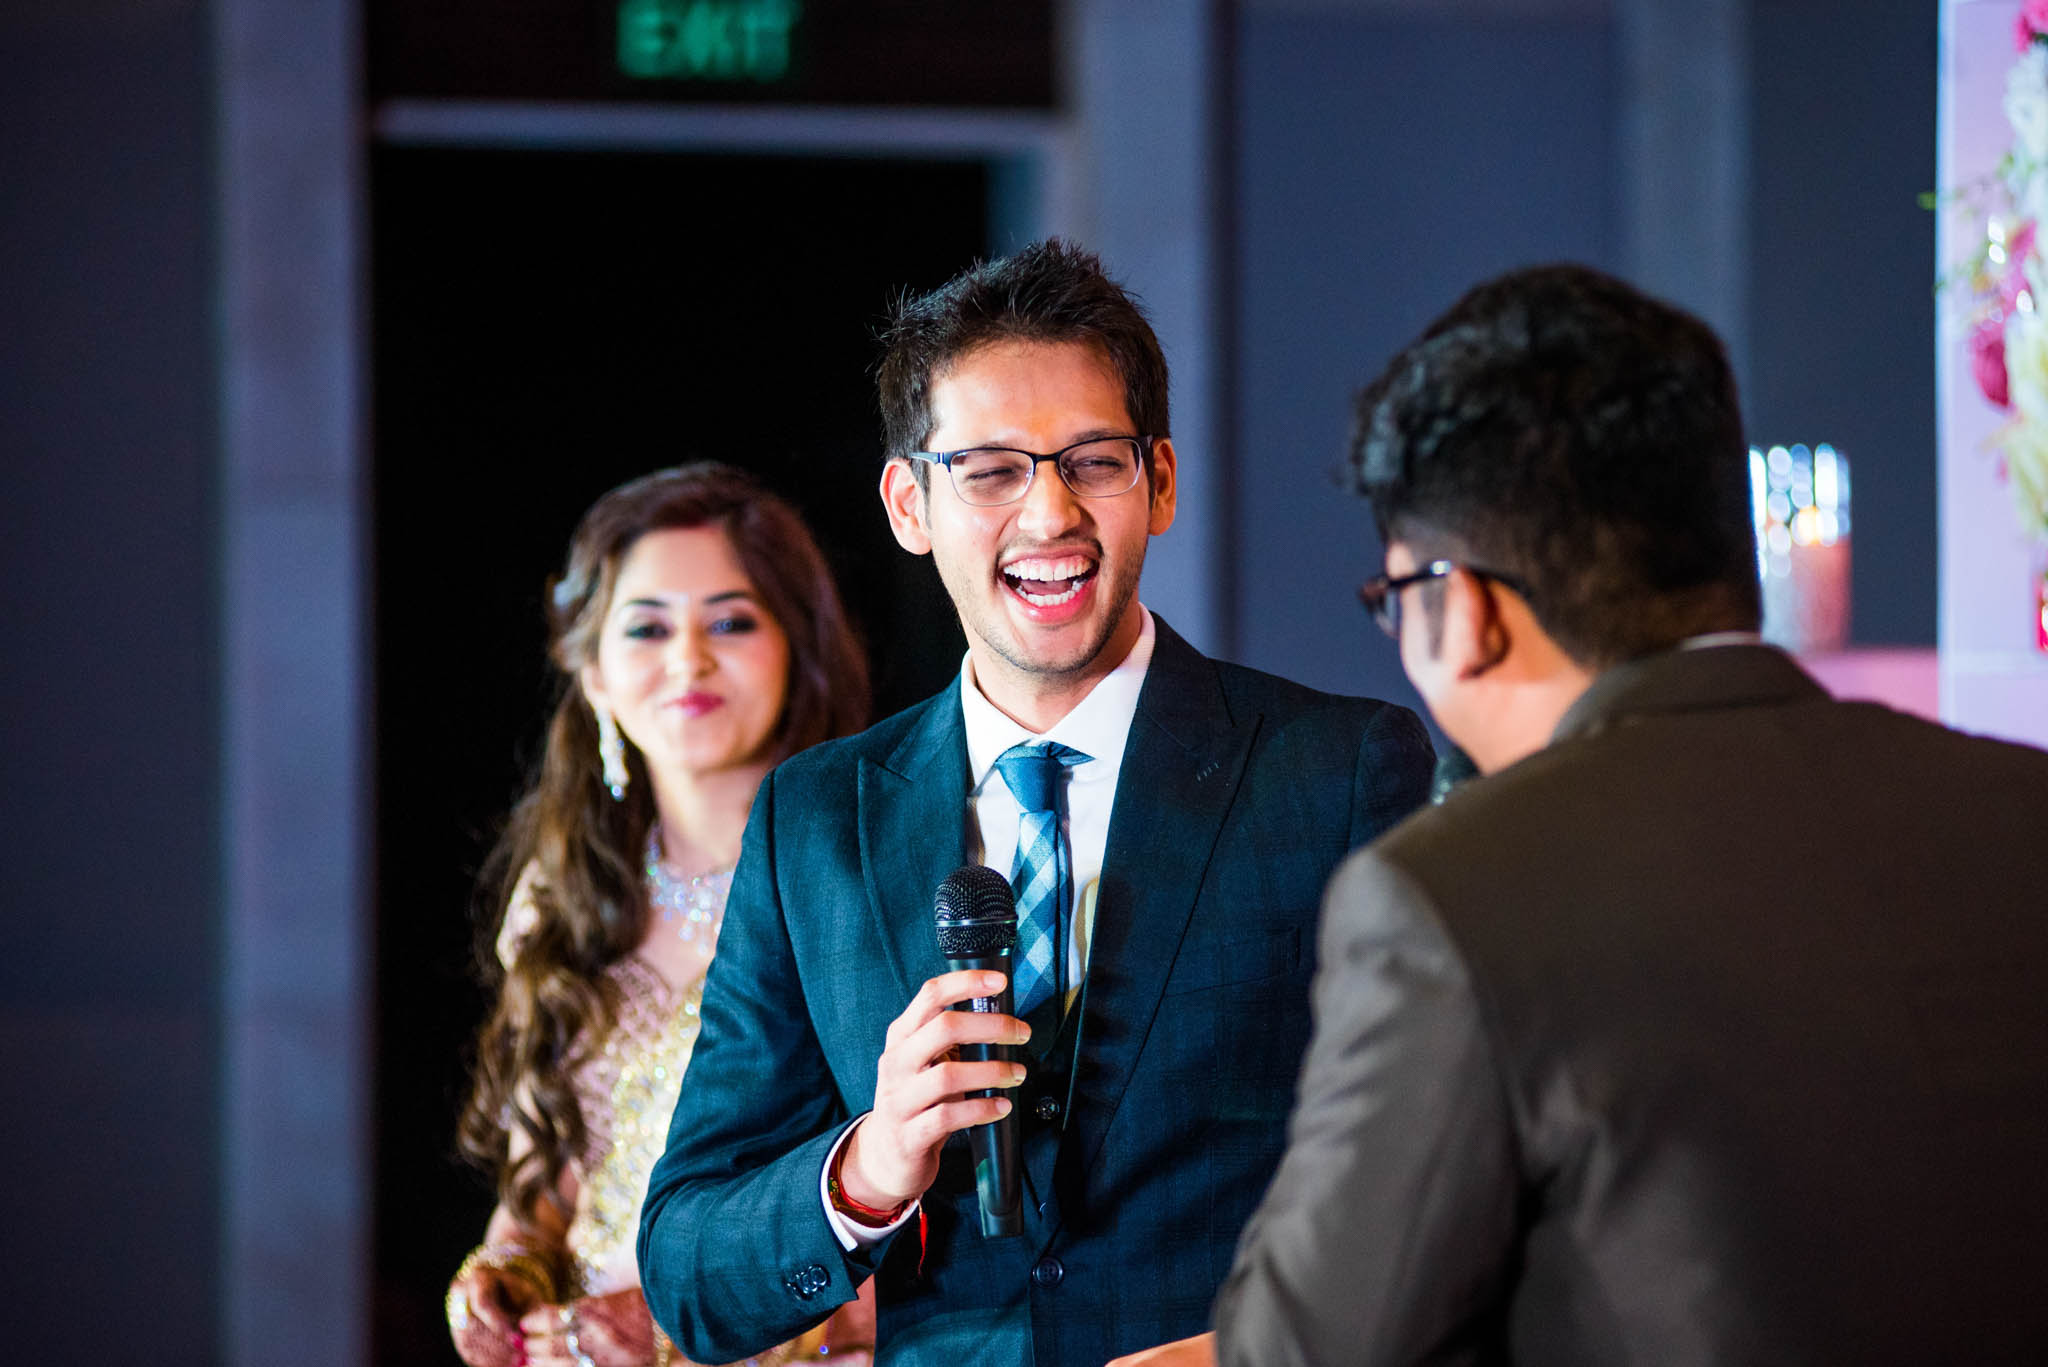 StRegis-Palladium-Mumbai-Candid-Wedding-Photography-59